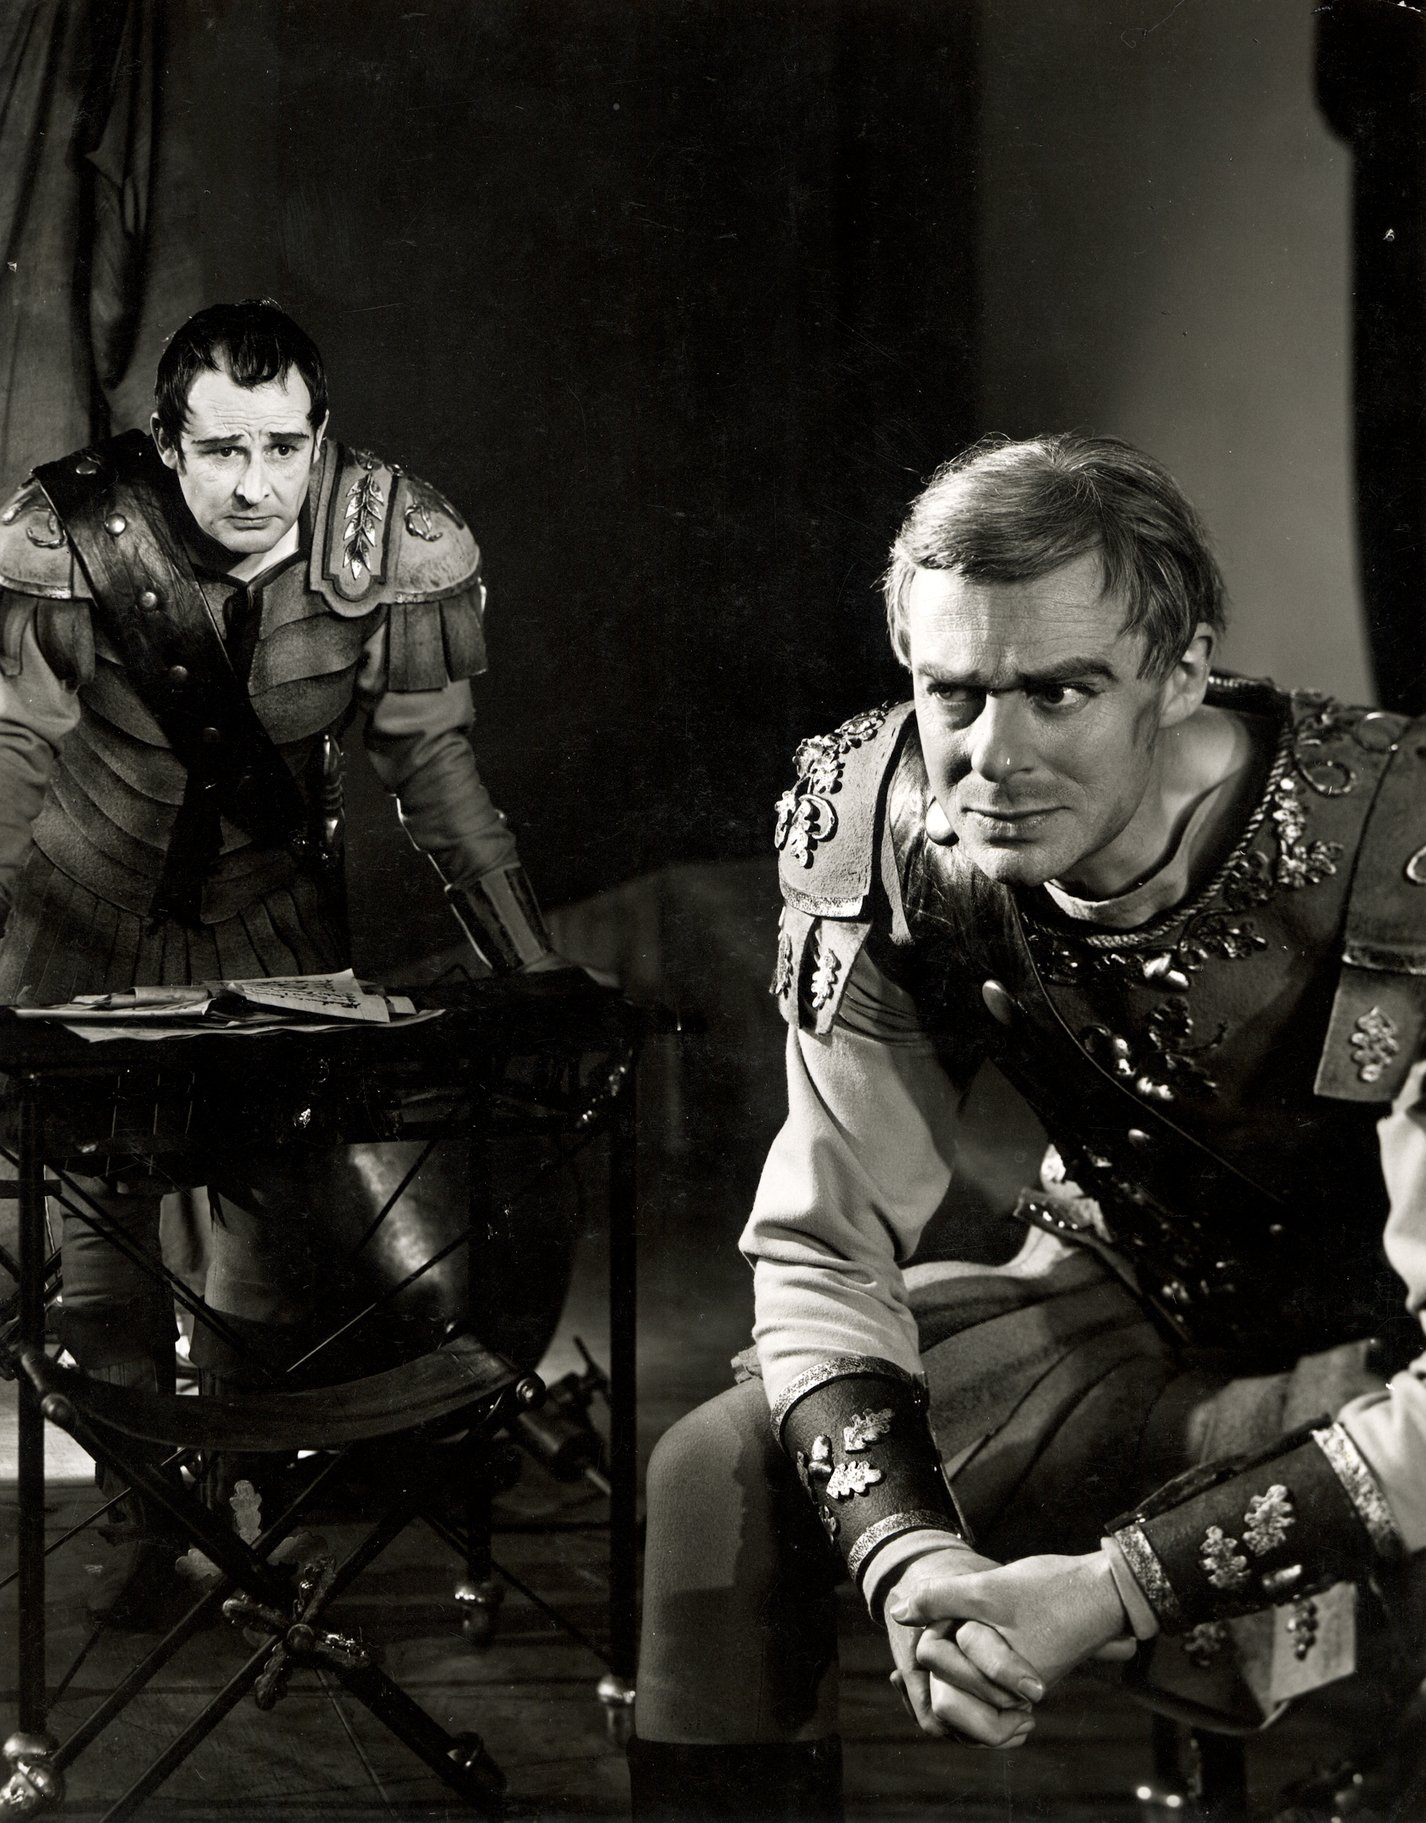 Cassius and Brutus both sit and think as they prepare for war in the 1957 production of Julius Caesar.